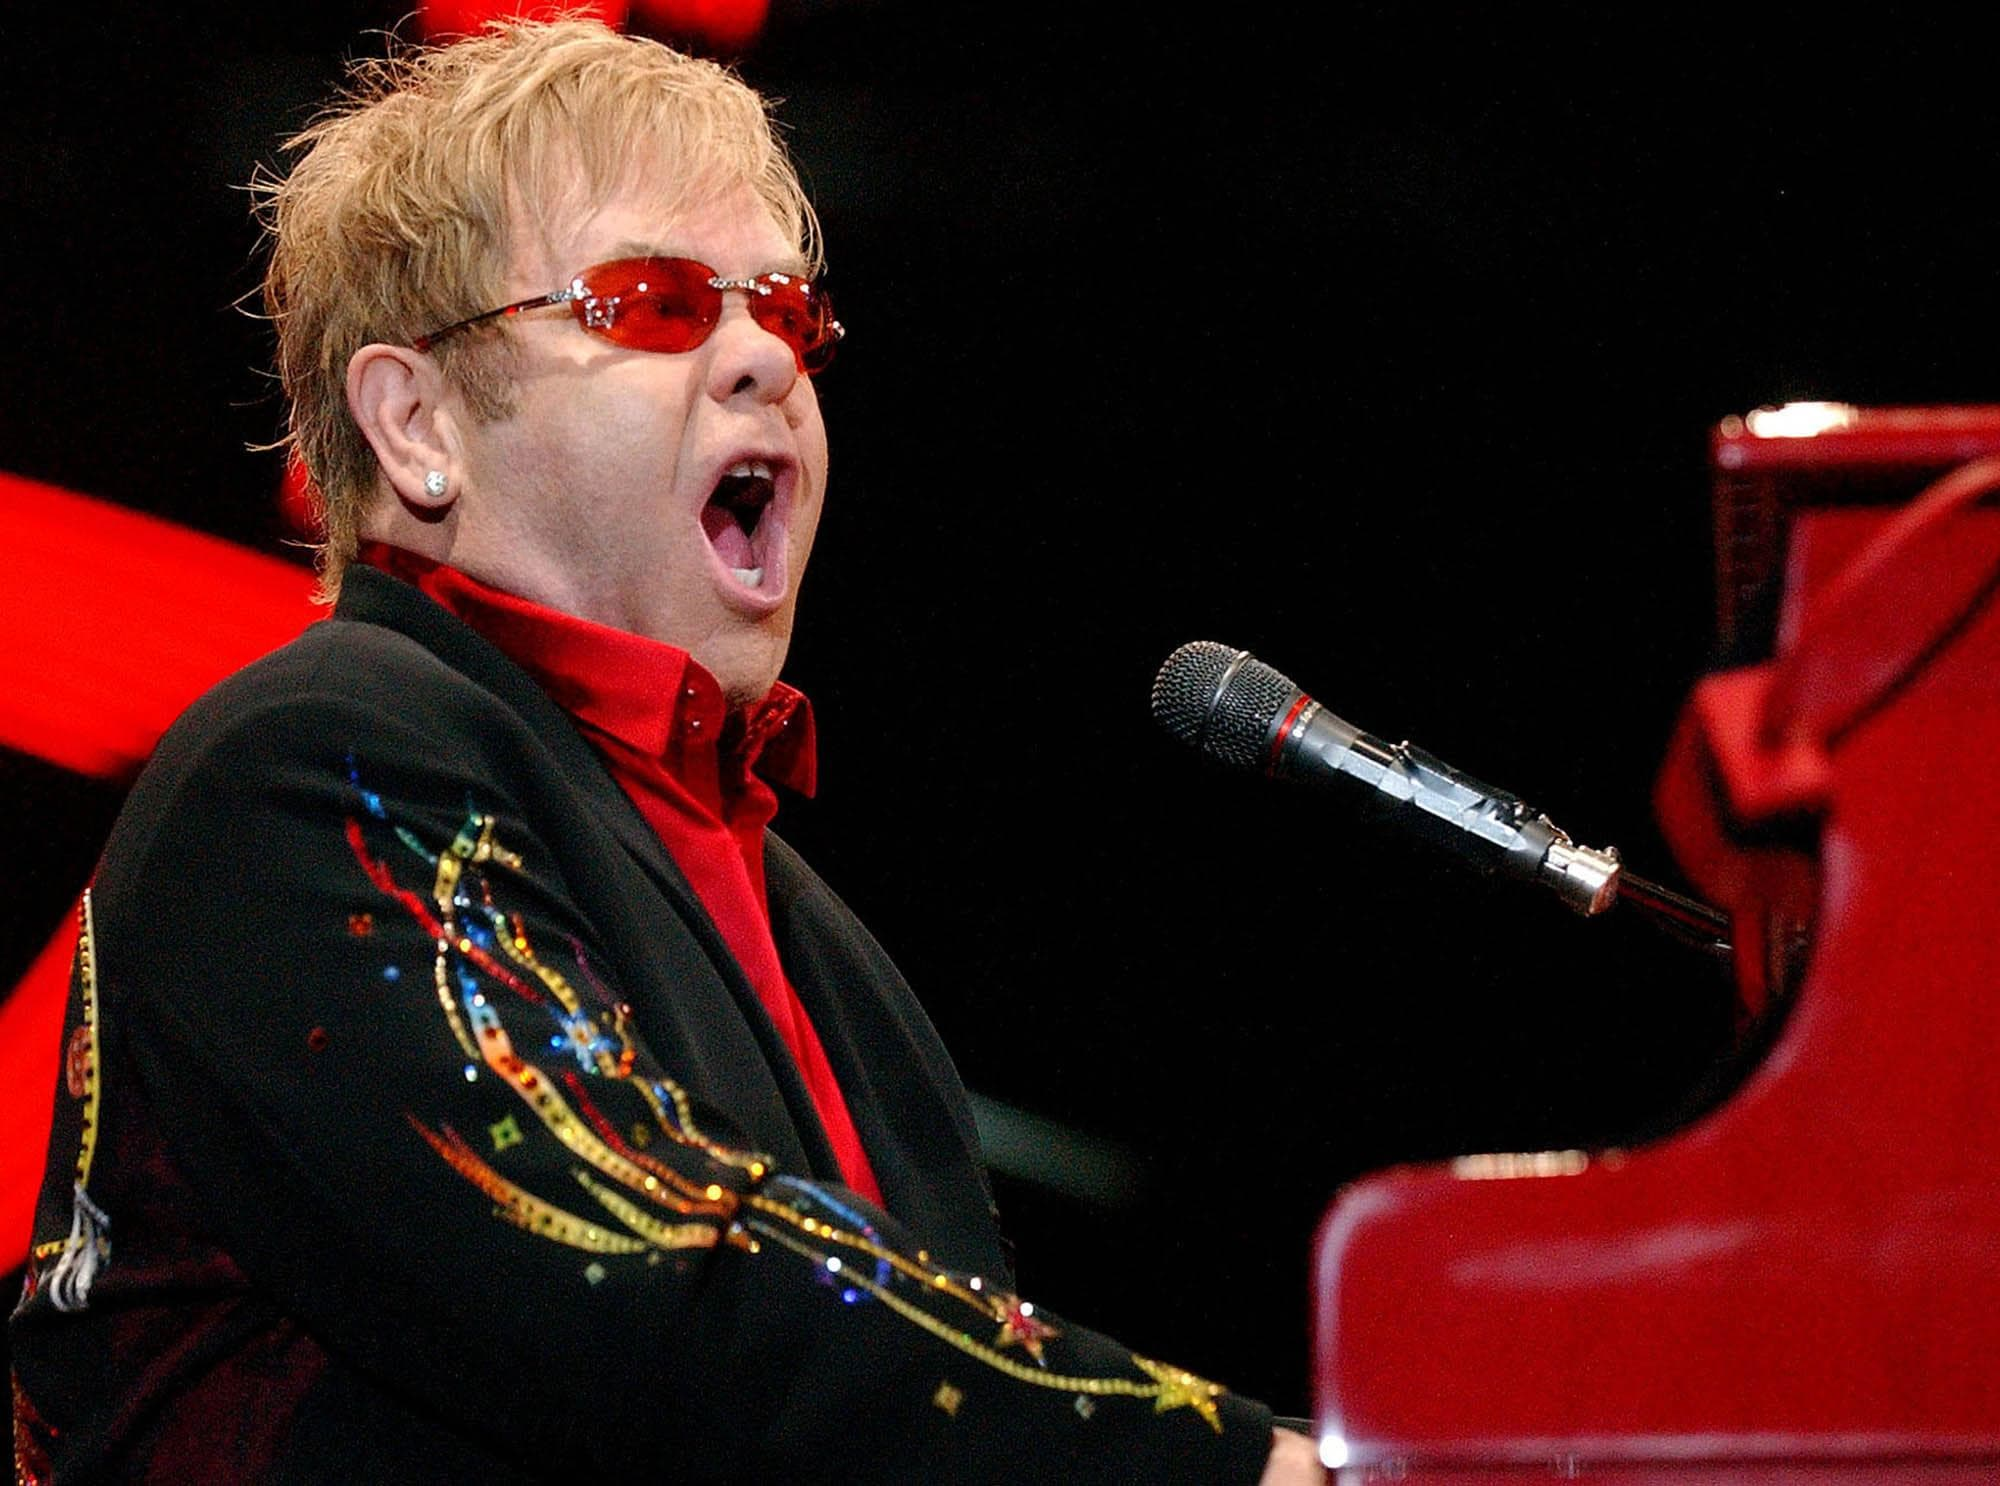 Elton John Wallpapers hd